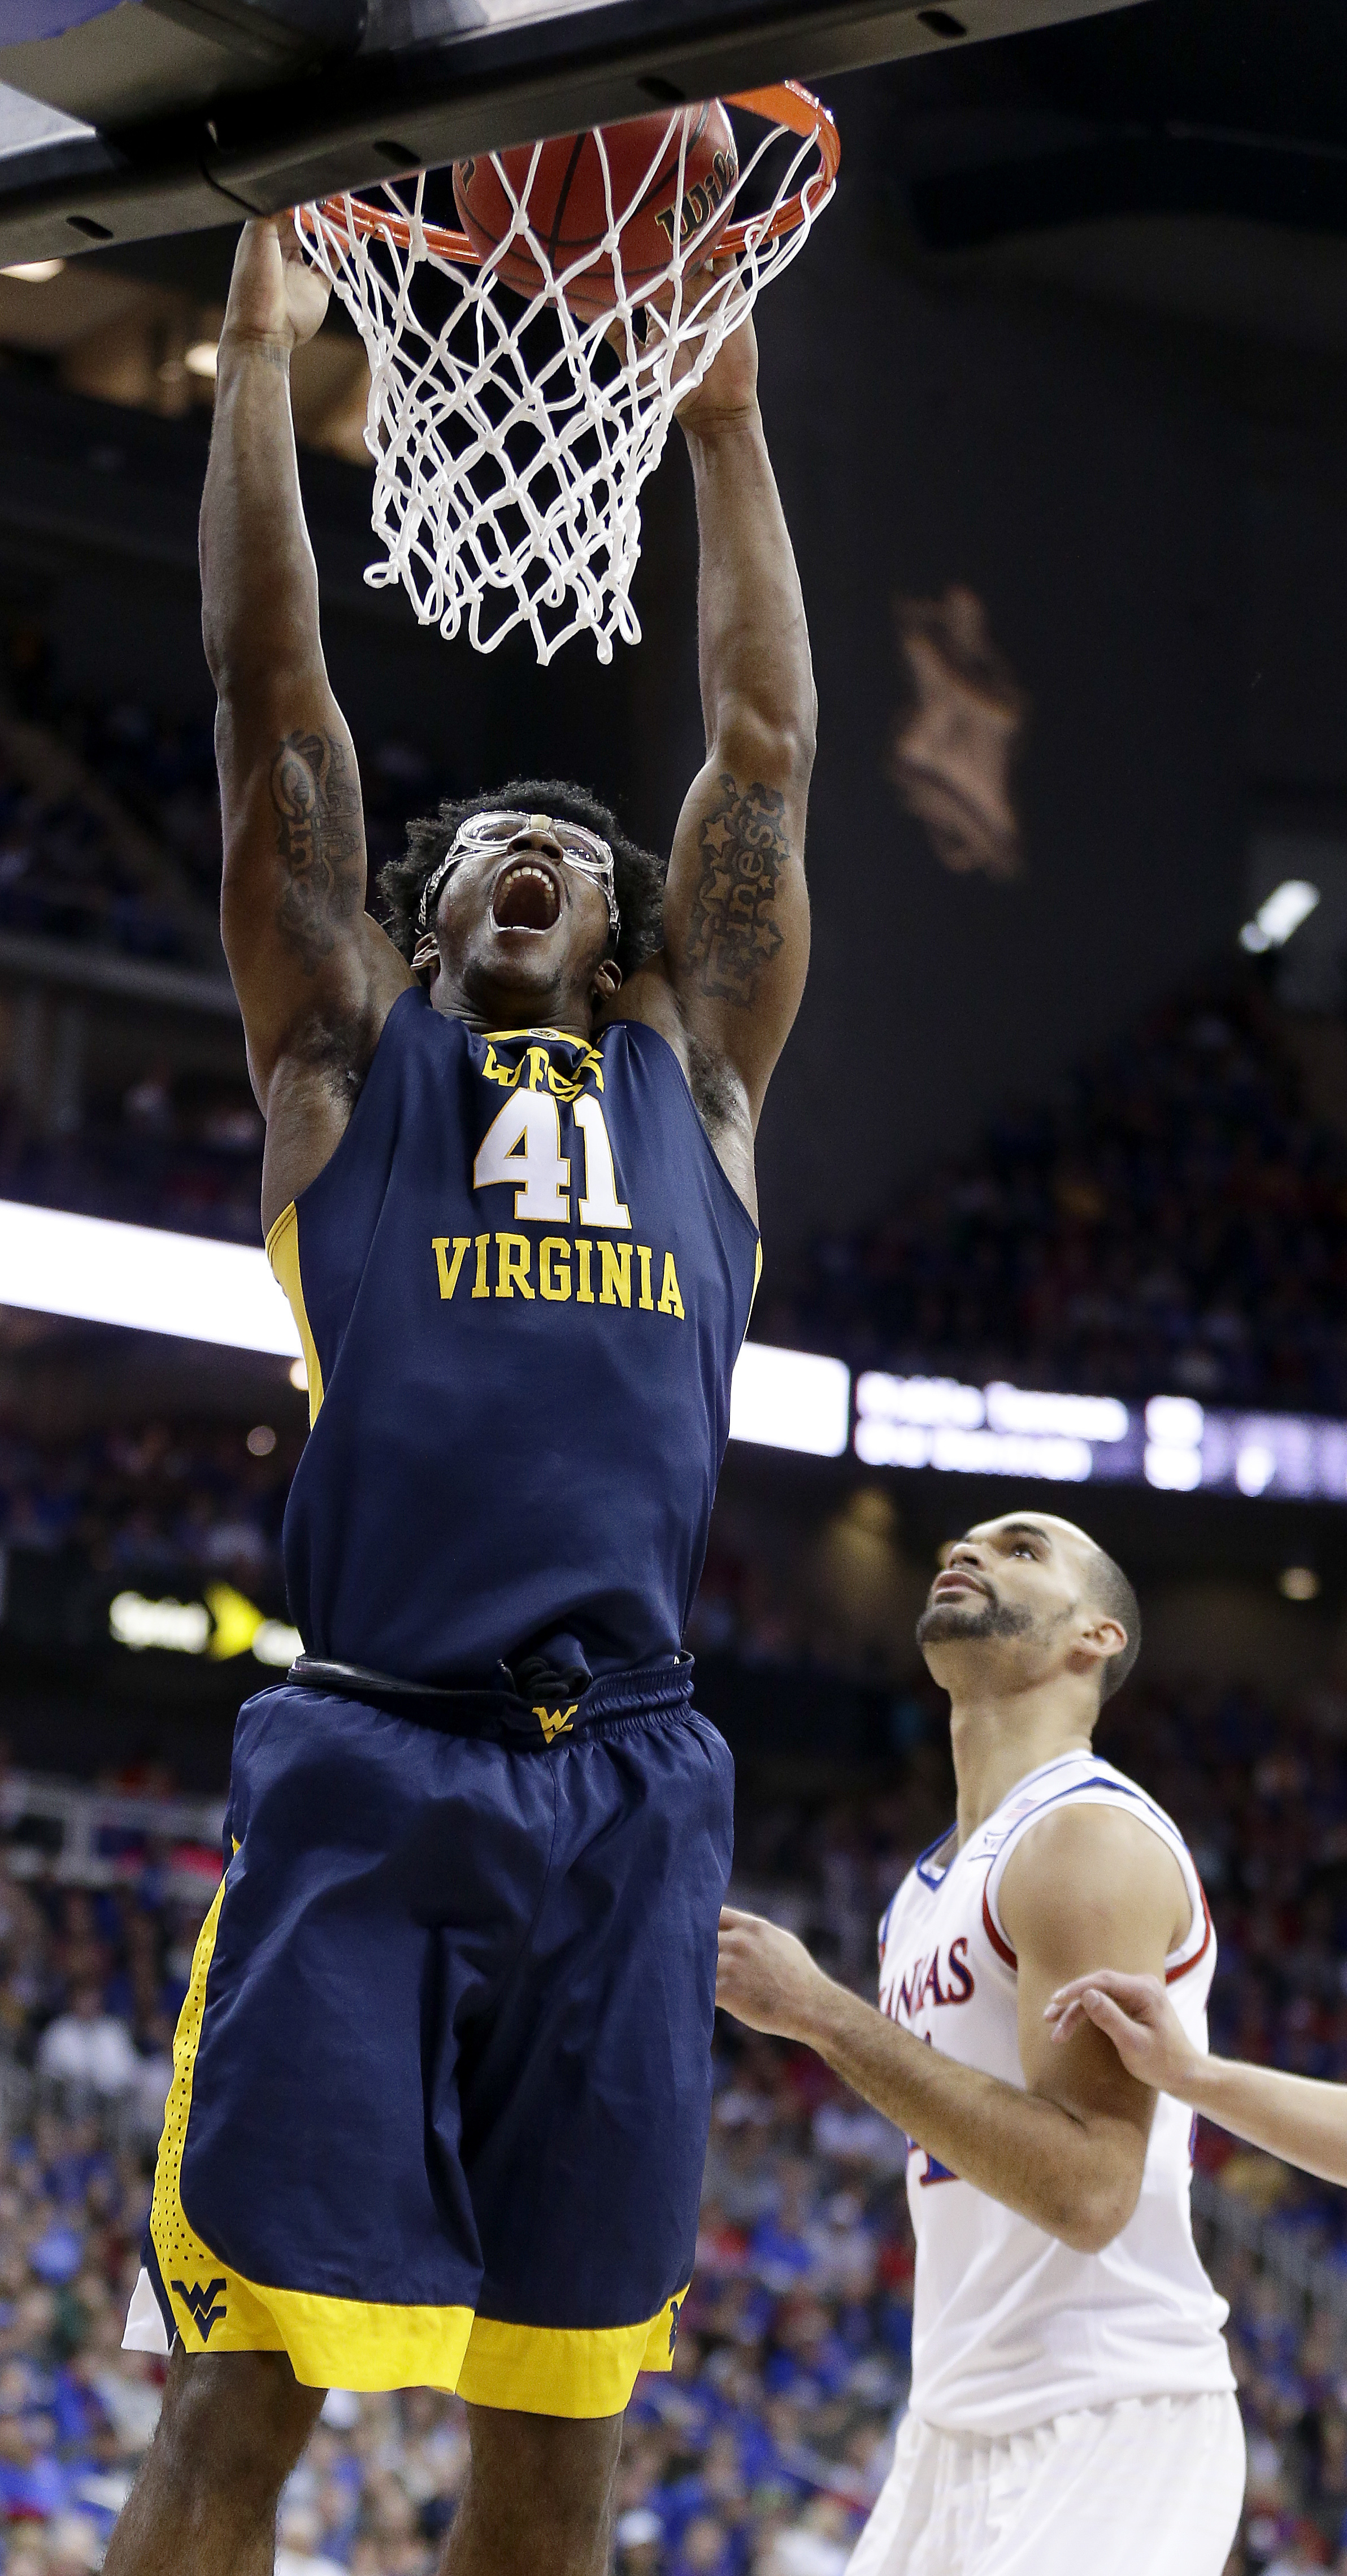 West Virginia's Devin Williams (41) gets past Kansas' Perry Ellis to dunk during the first half of an NCAA college basketball game in the final of the Big 12 conference men's tournament Saturday, March 12, 2016, in Kansas City, Mo. (AP Photo/Charlie Riede